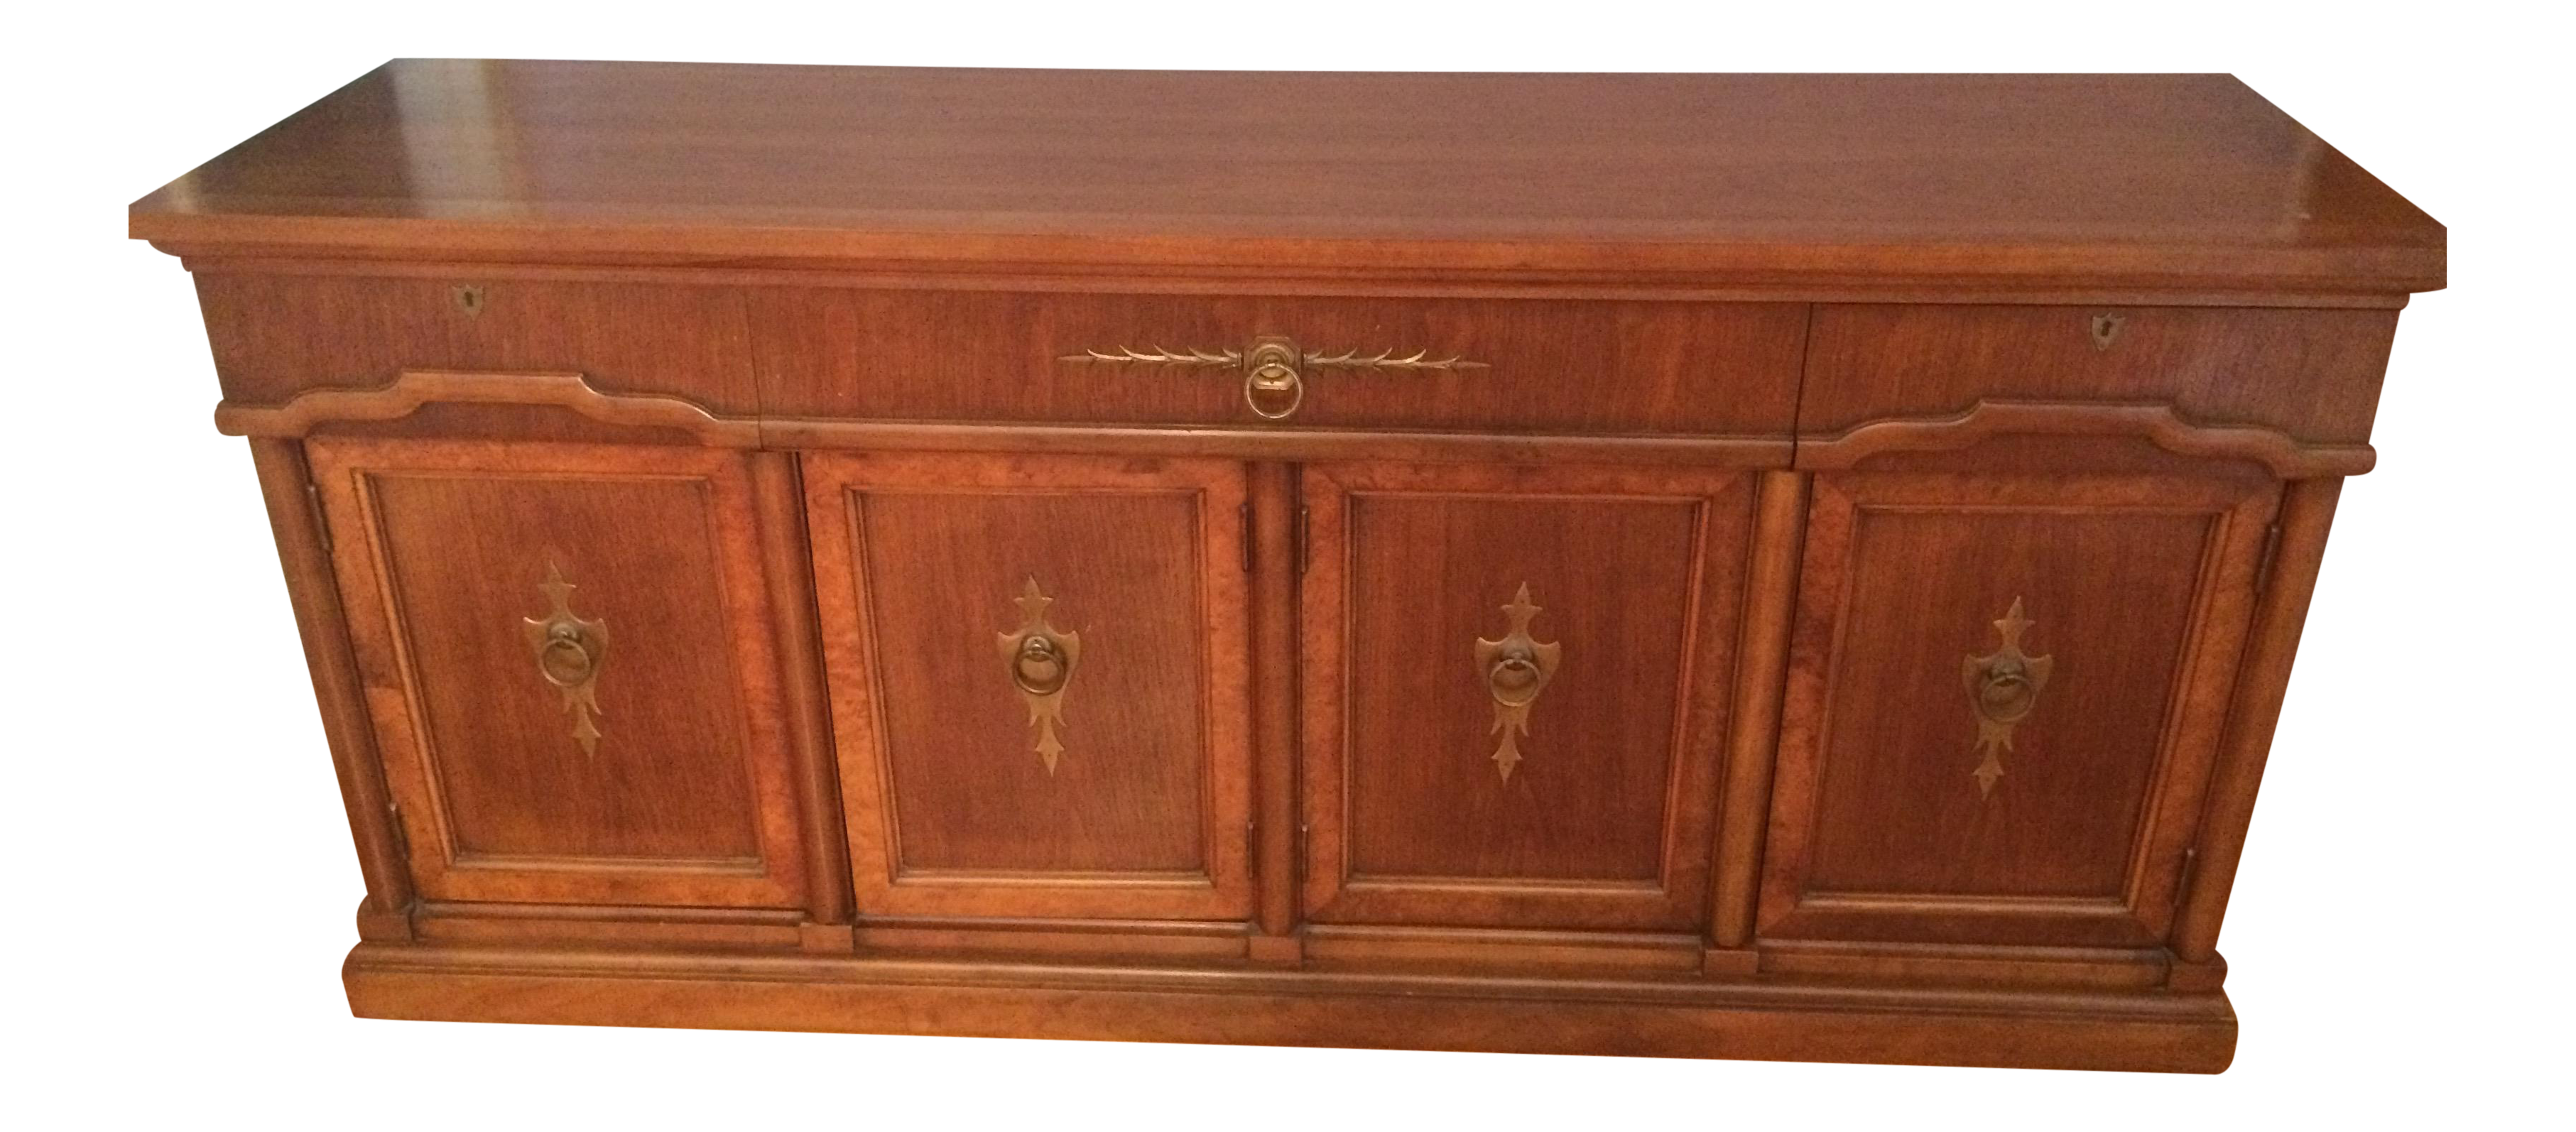 Thomasville Bedroom Furniture 1960 S gently used thomasville furniture - save up to 40% at chairish